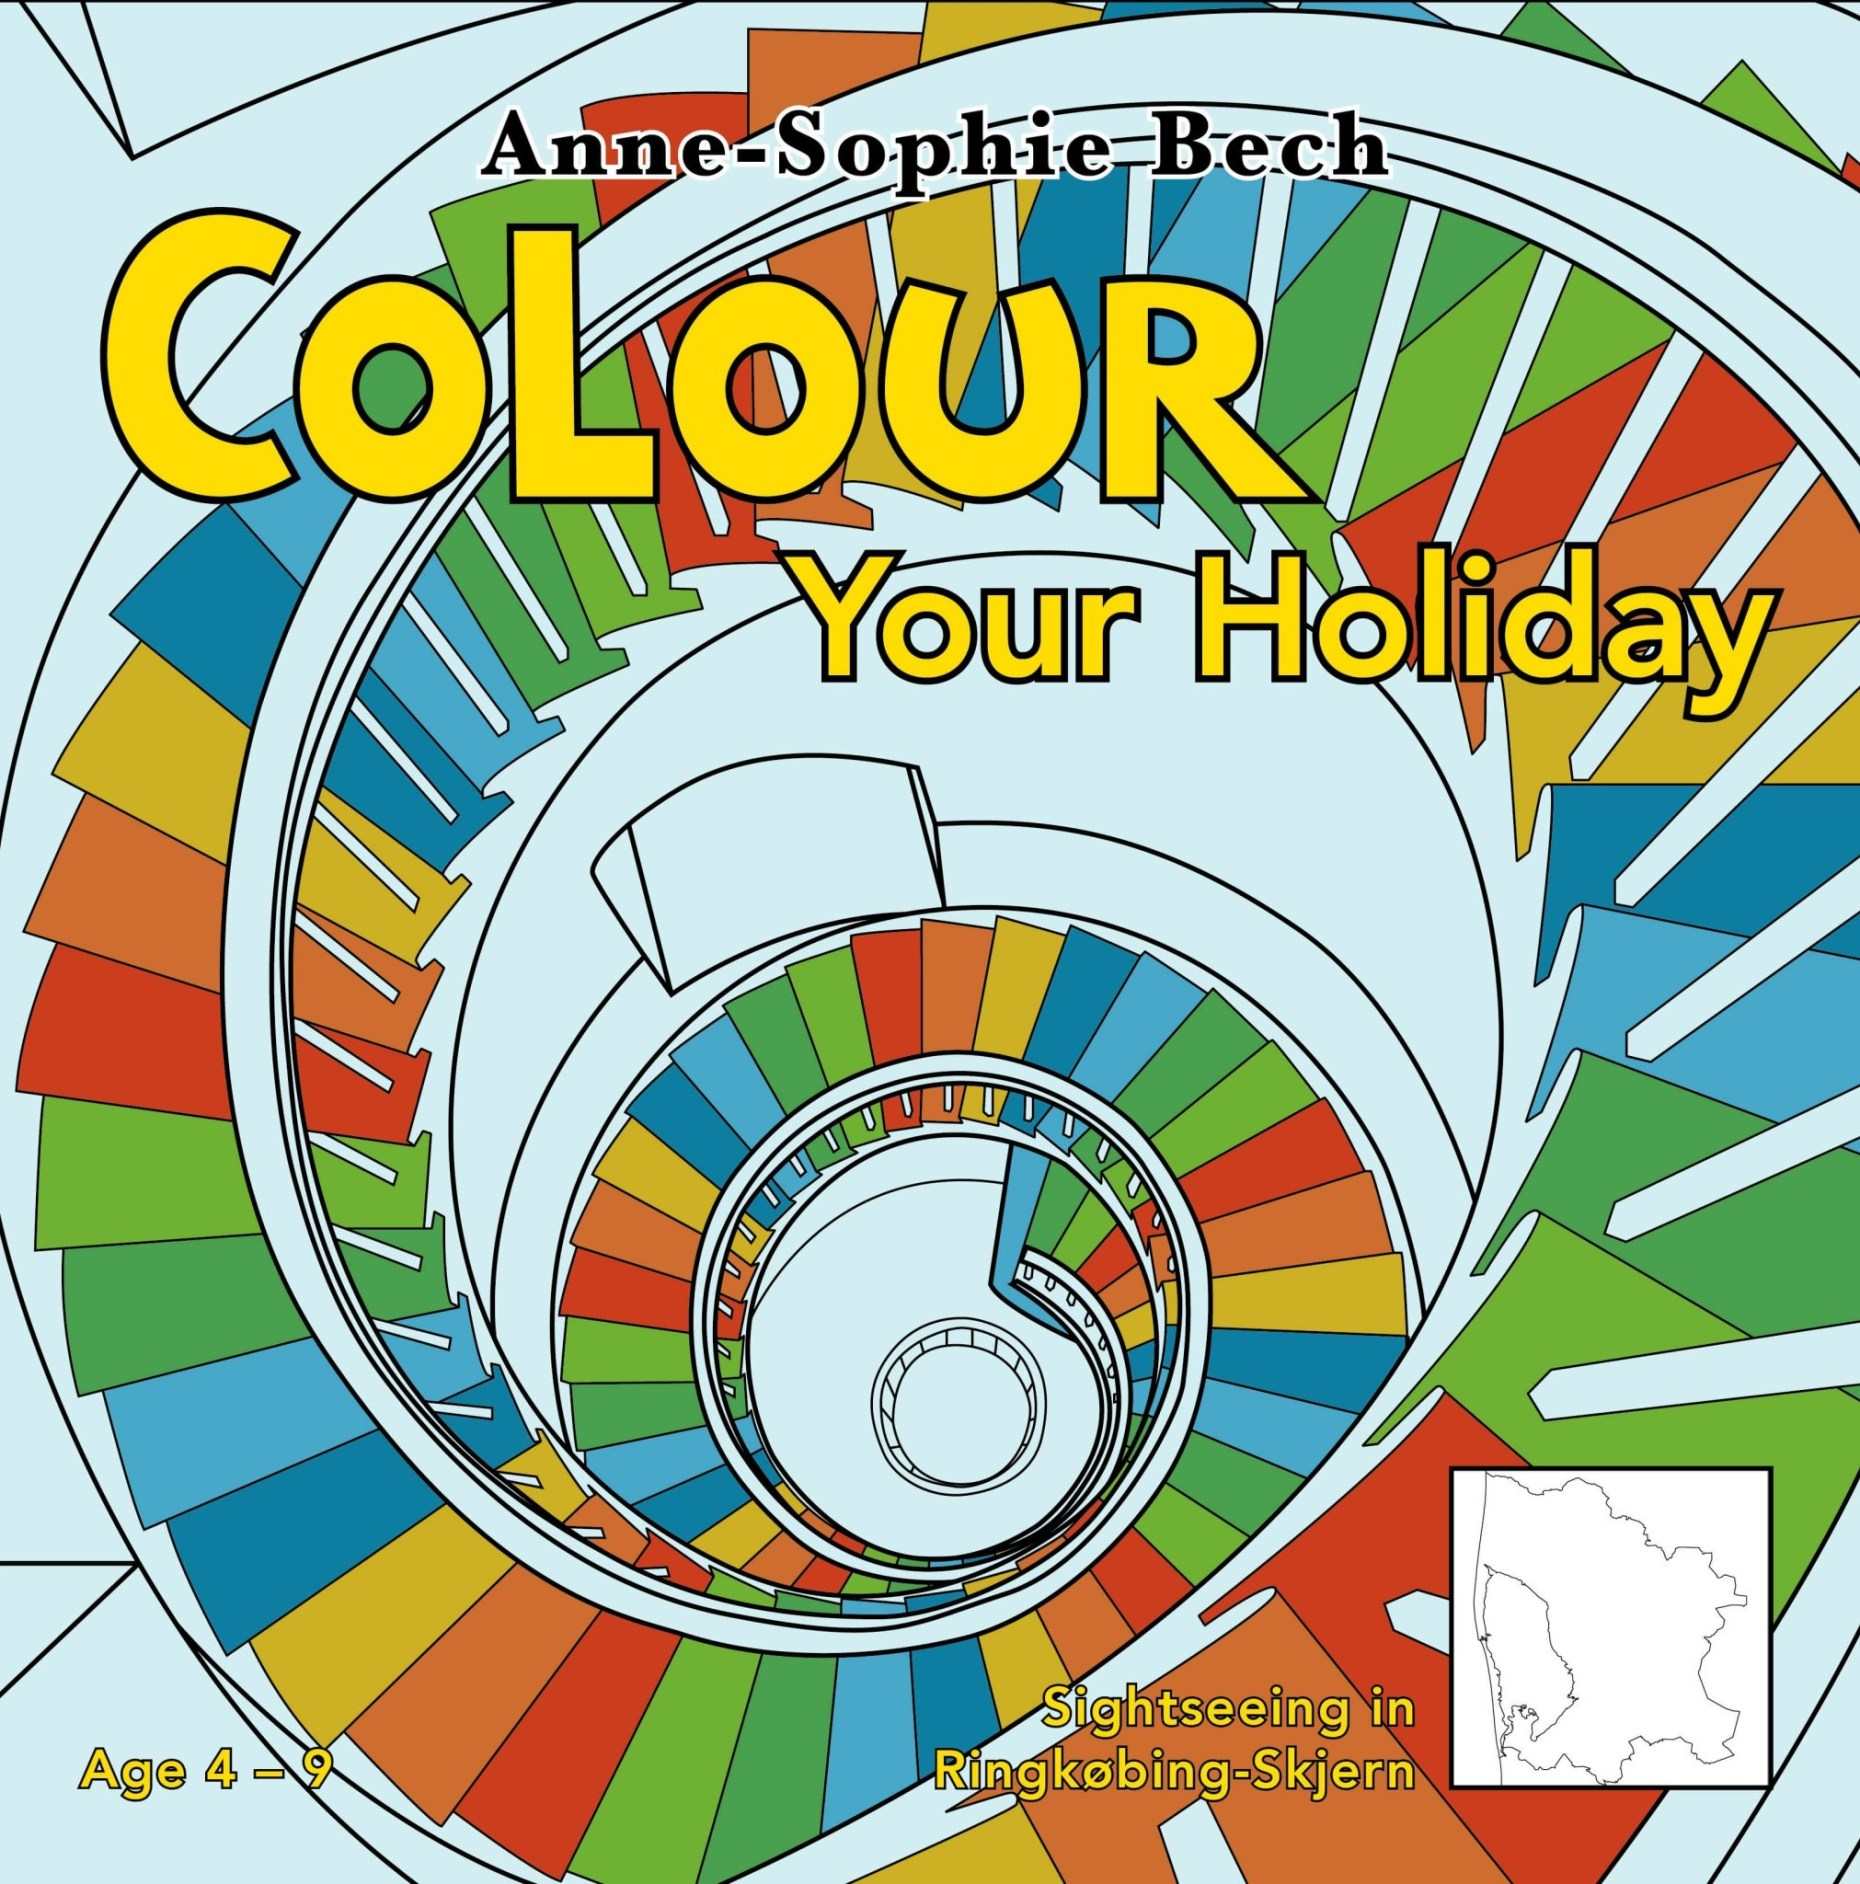 Colour Your Holiday - Sightseeing in Ringkøbing-Skjern - børne cover